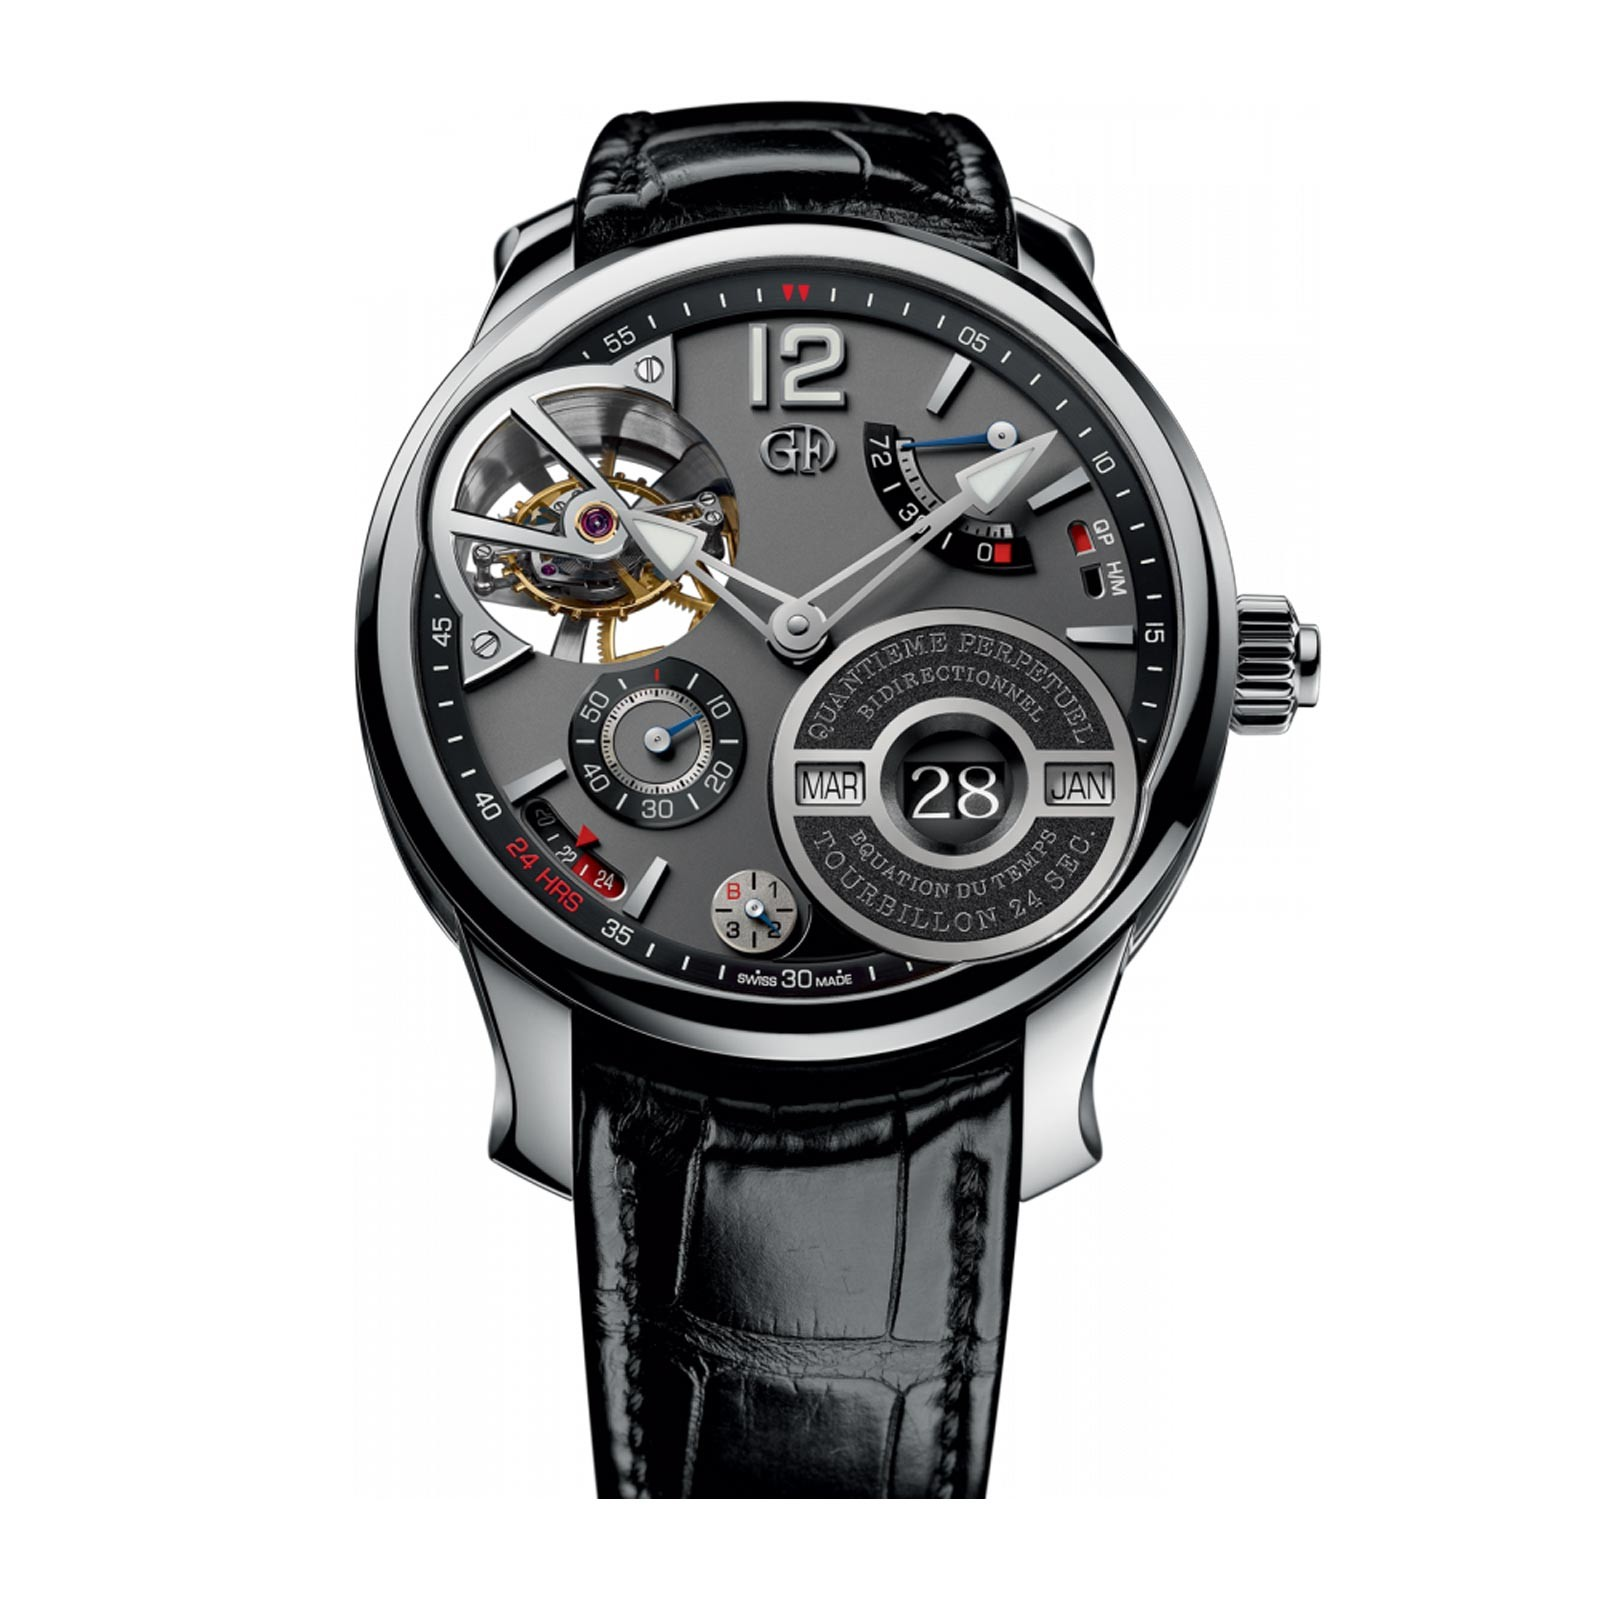 Perpetual Calendar Watch : Top perpetual calendar watches time transformed